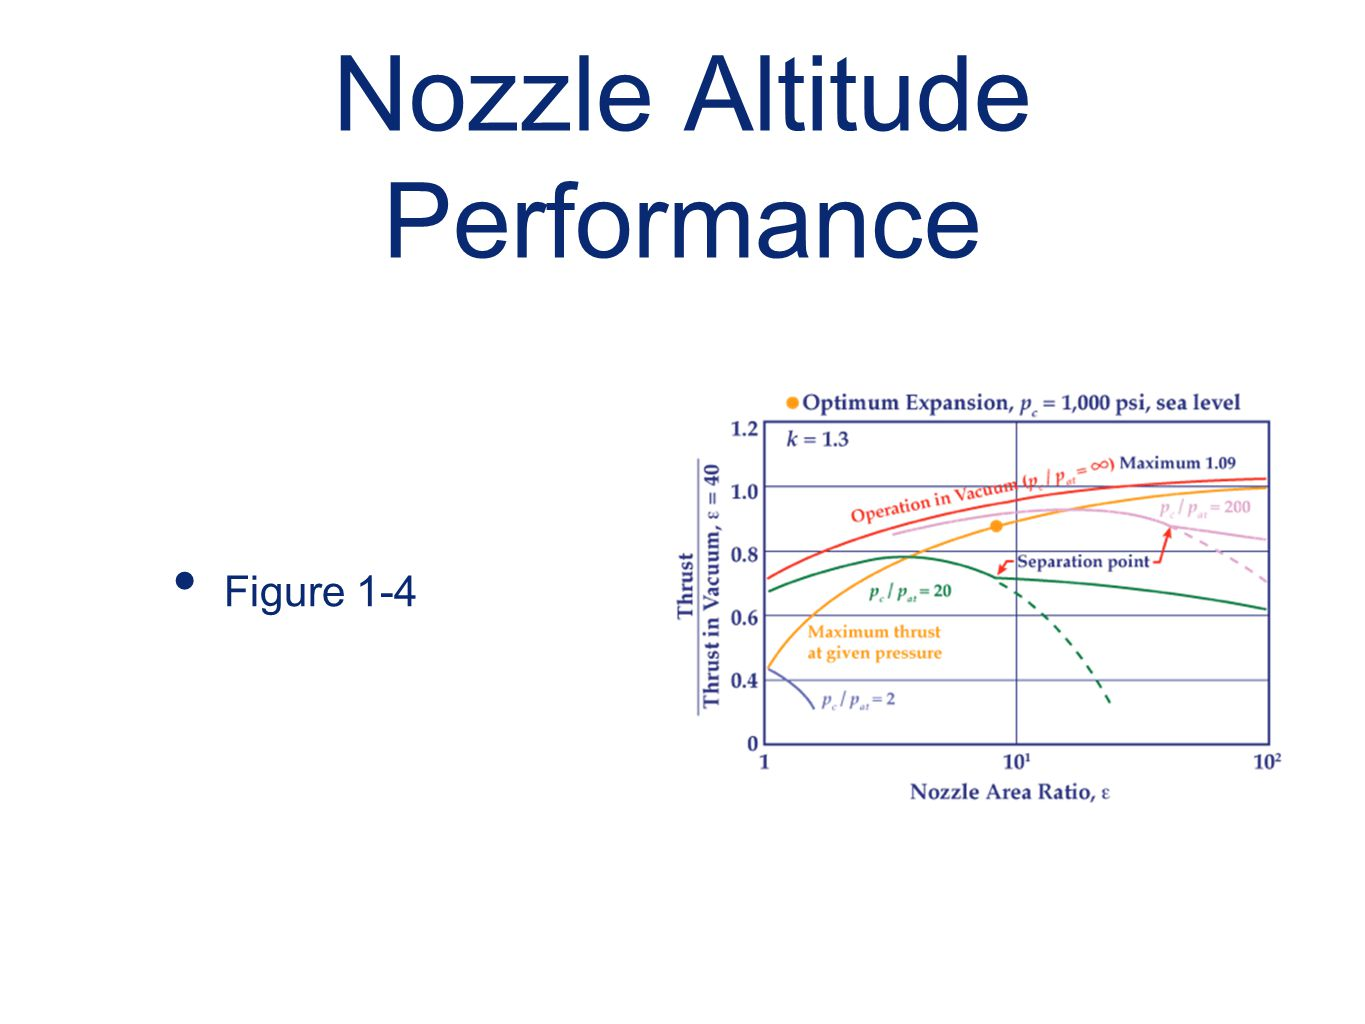 Nozzle Altitude Performance Figure 1-4